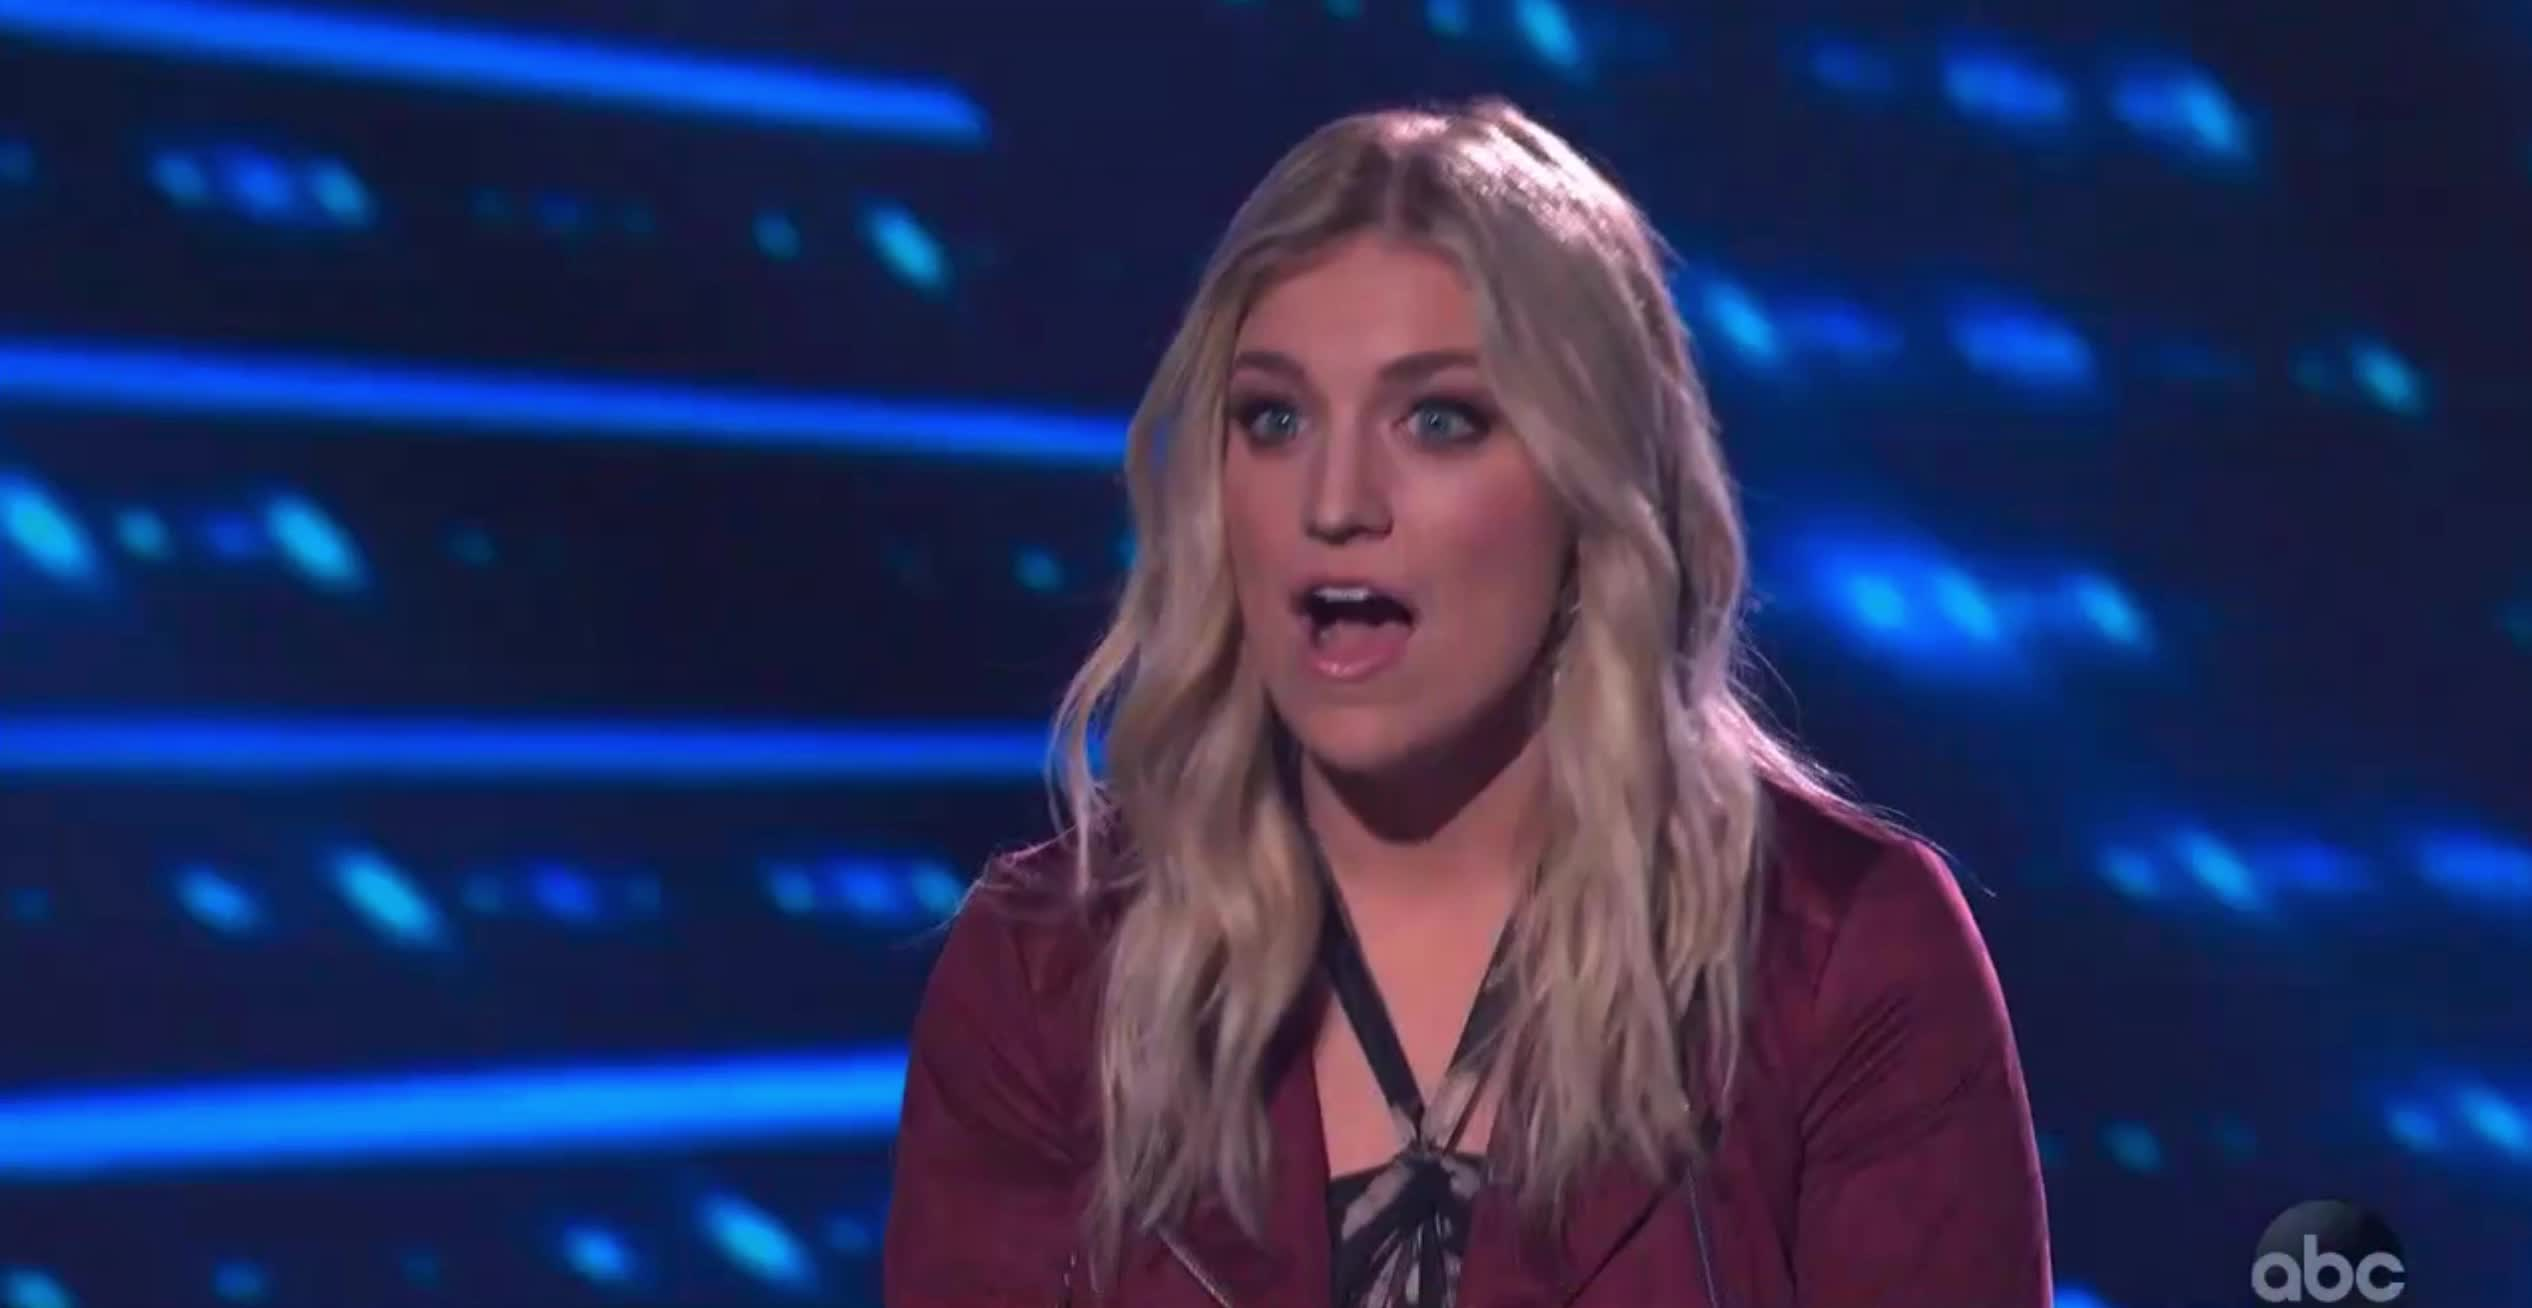 american idol, american idol season 17, americanidol, ashley hess, katy perry, lionel richie, luke bryan, ryan seacrest, season 17, shocked, whoa, woah, wow, American Idol Ashley Wow Shocked GIFs